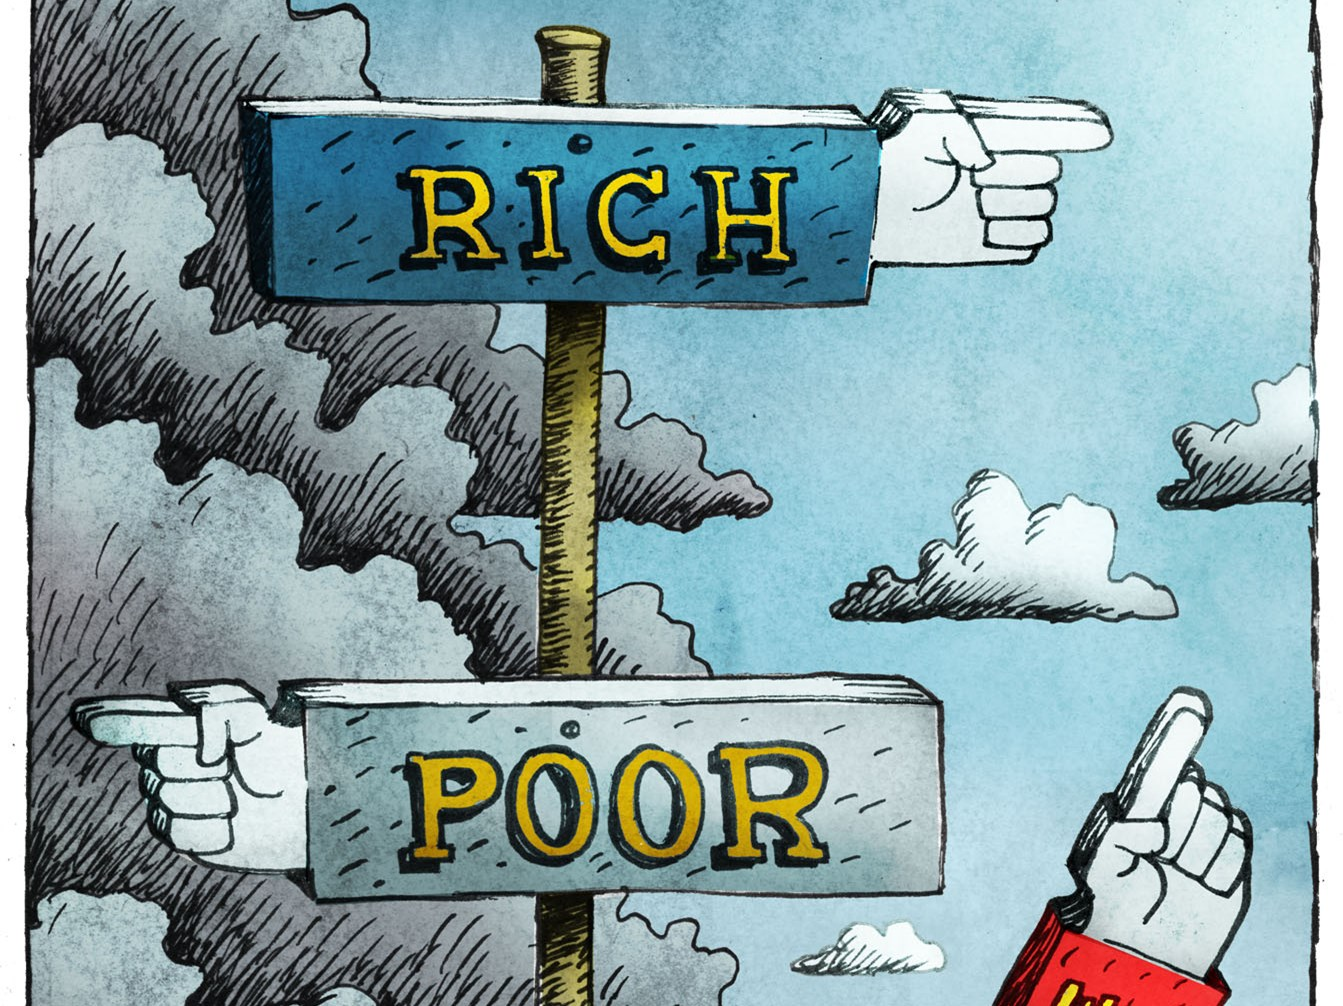 """an analysis of the poor are the richest Peter singer- rich and poor peter singer's article """"rich and poor"""" we will look at line by line, but here are the items and arguments you should take away from our analysis."""